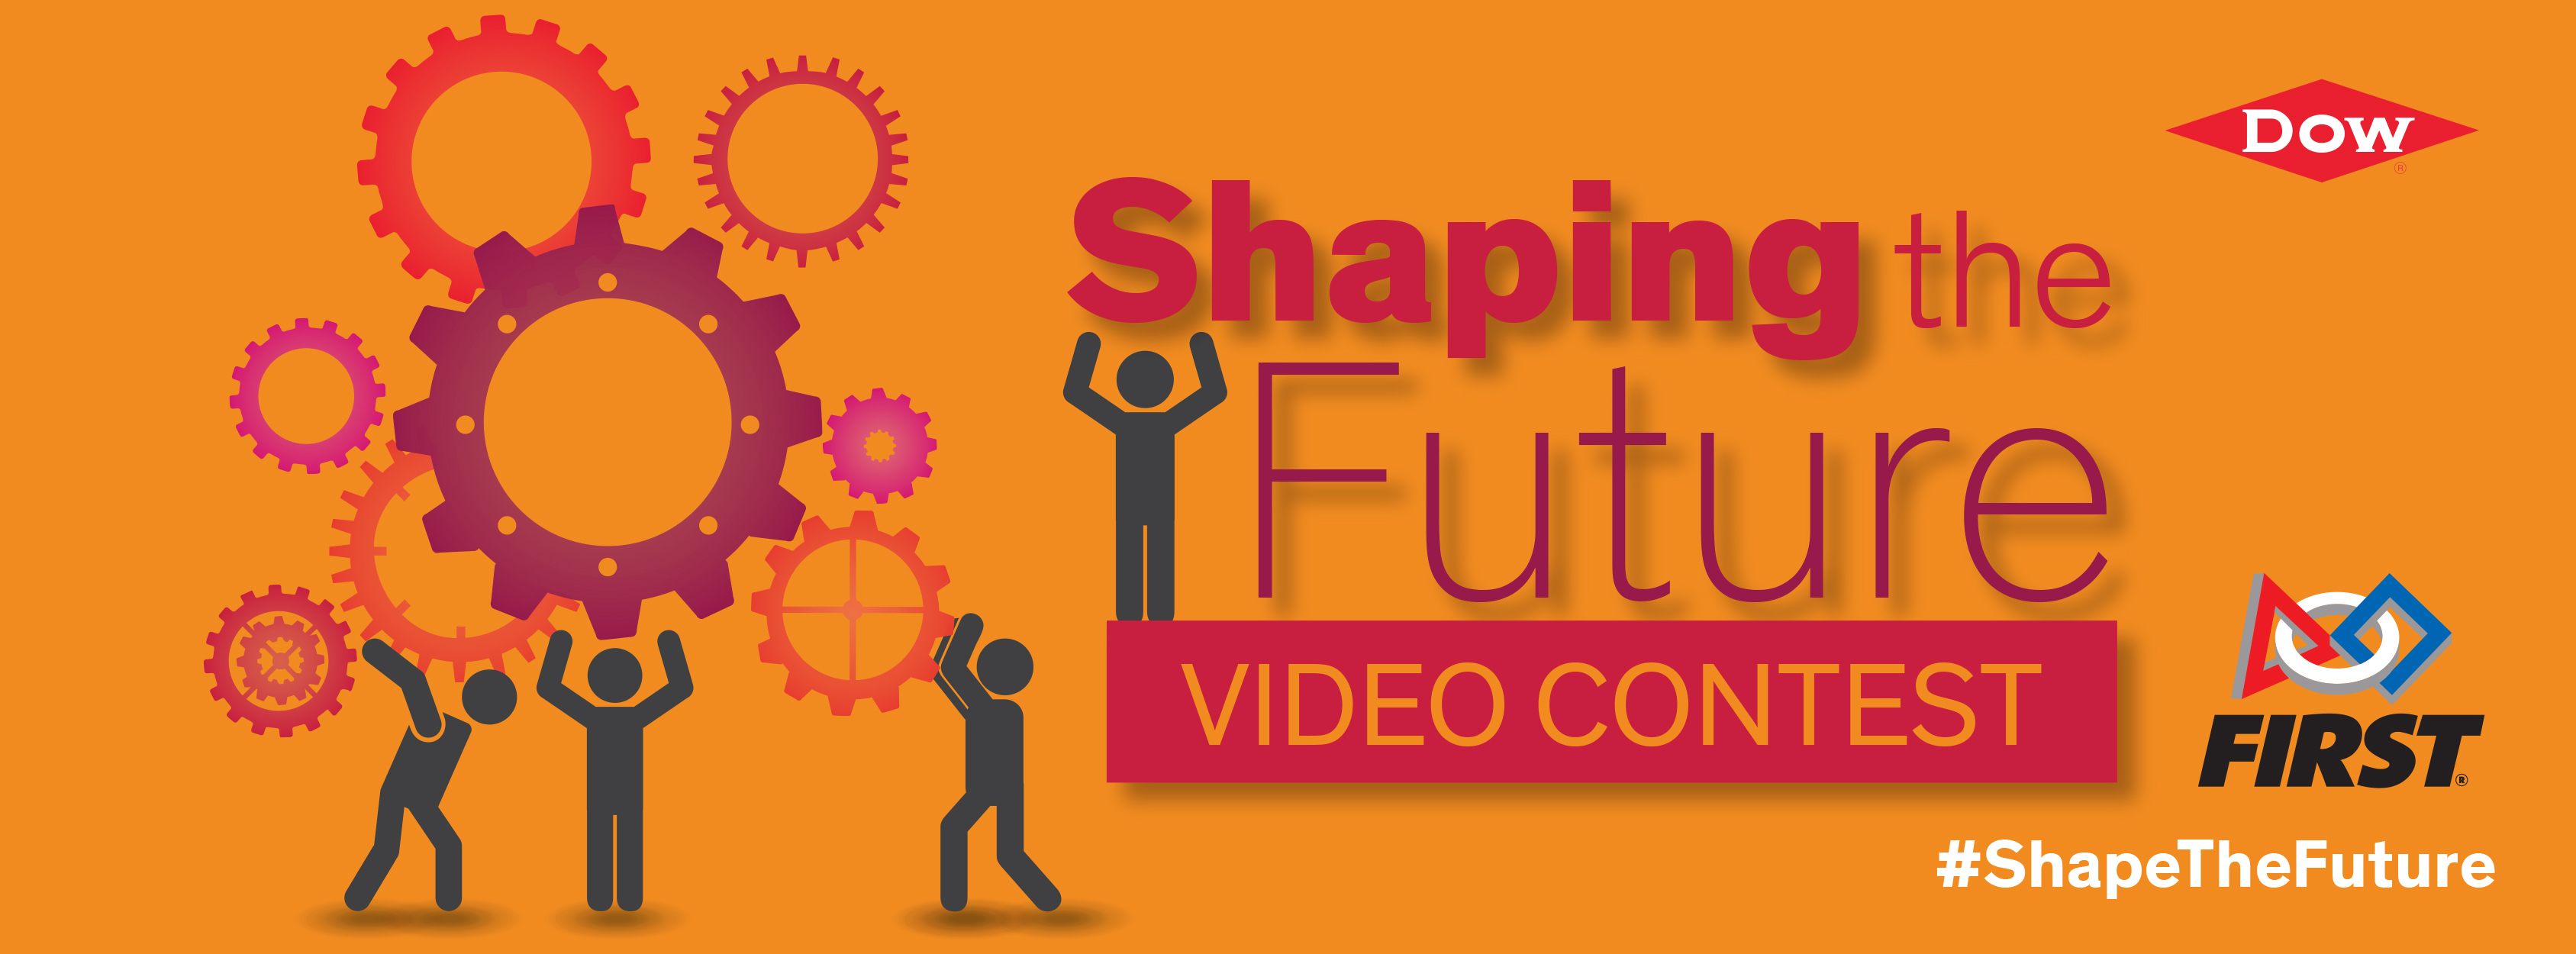 Shaping the Future Video Contest